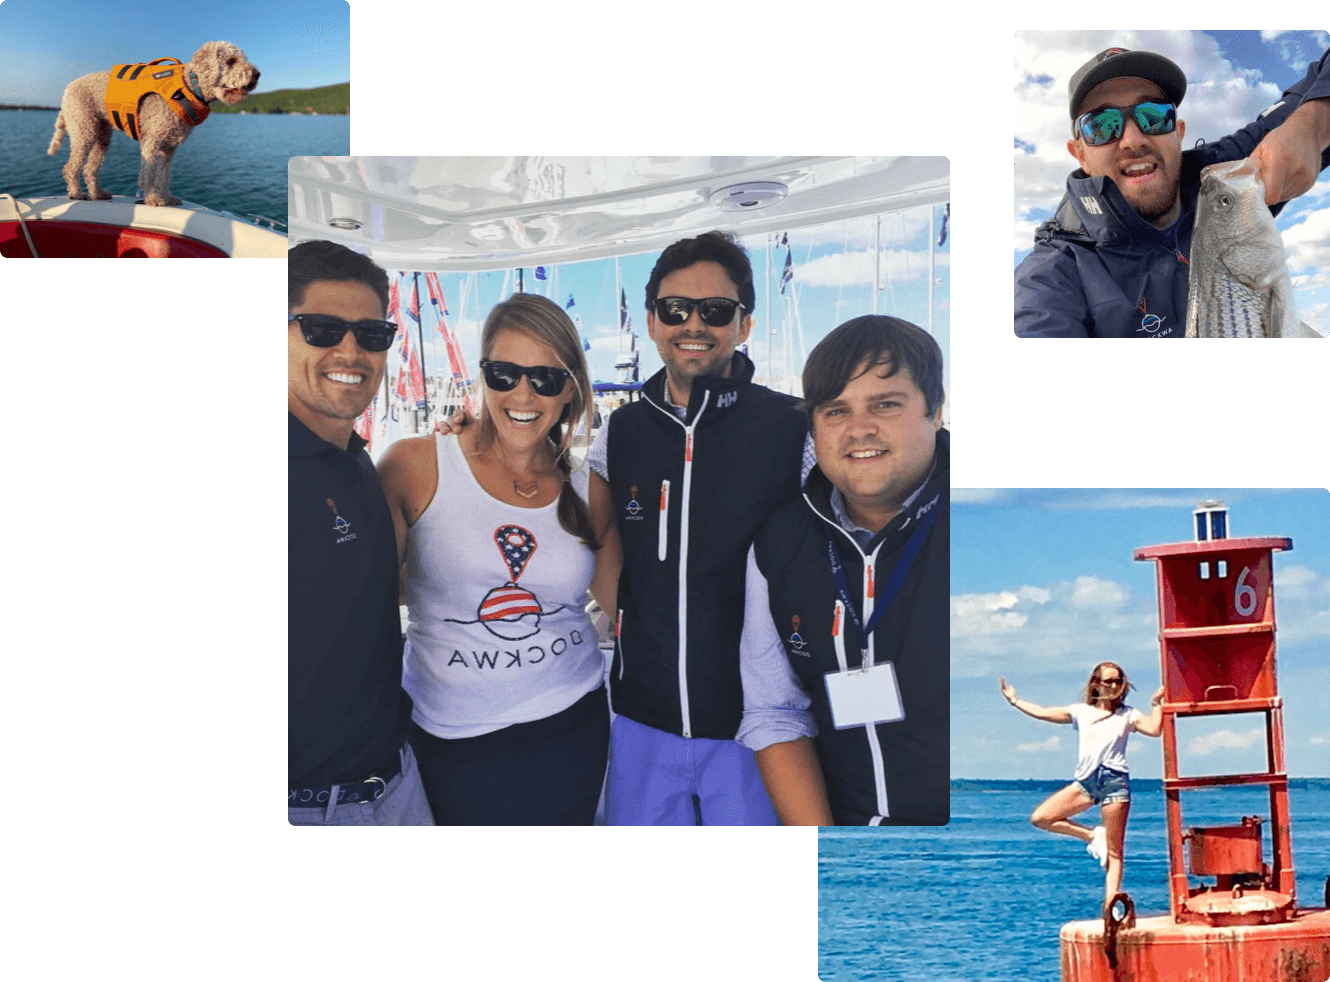 Dockwa employees enjoying their time on the water